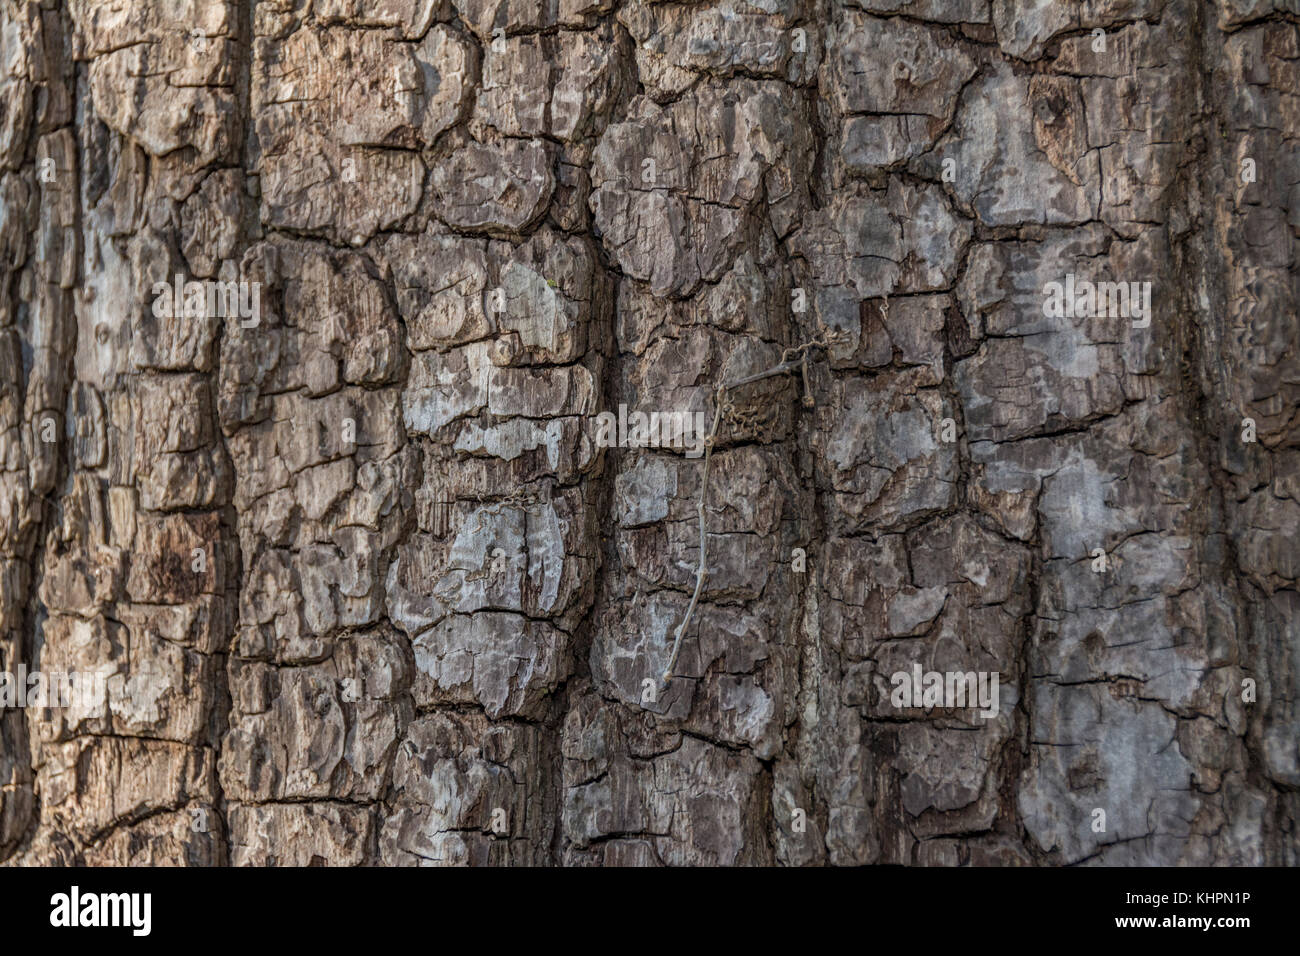 Furrowed Bark Stock Photos & Furrowed Bark Stock Images ...